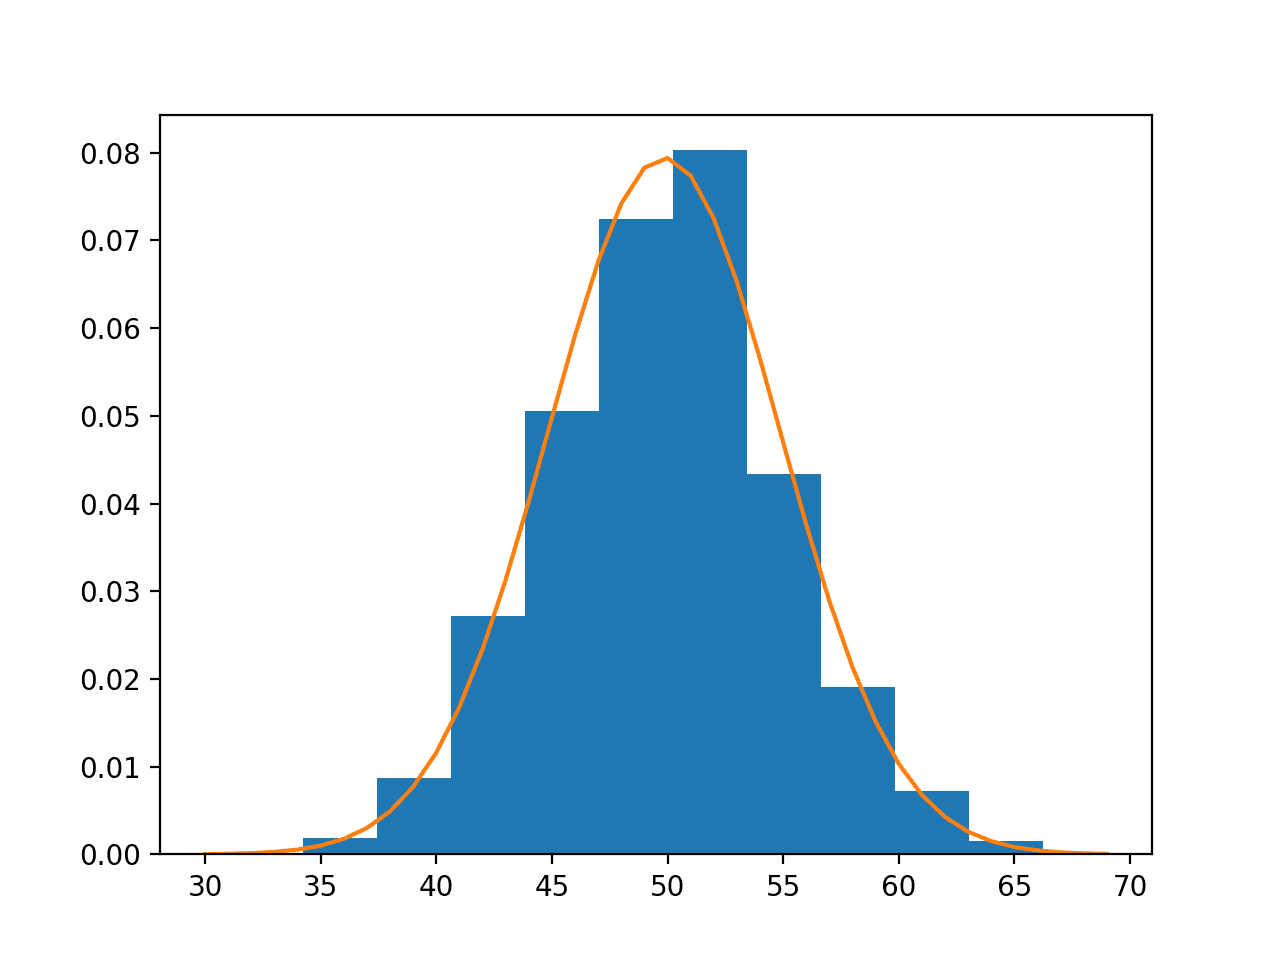 Data Sample Histogram With Probability Density Function Overlay for the Normal Distribution